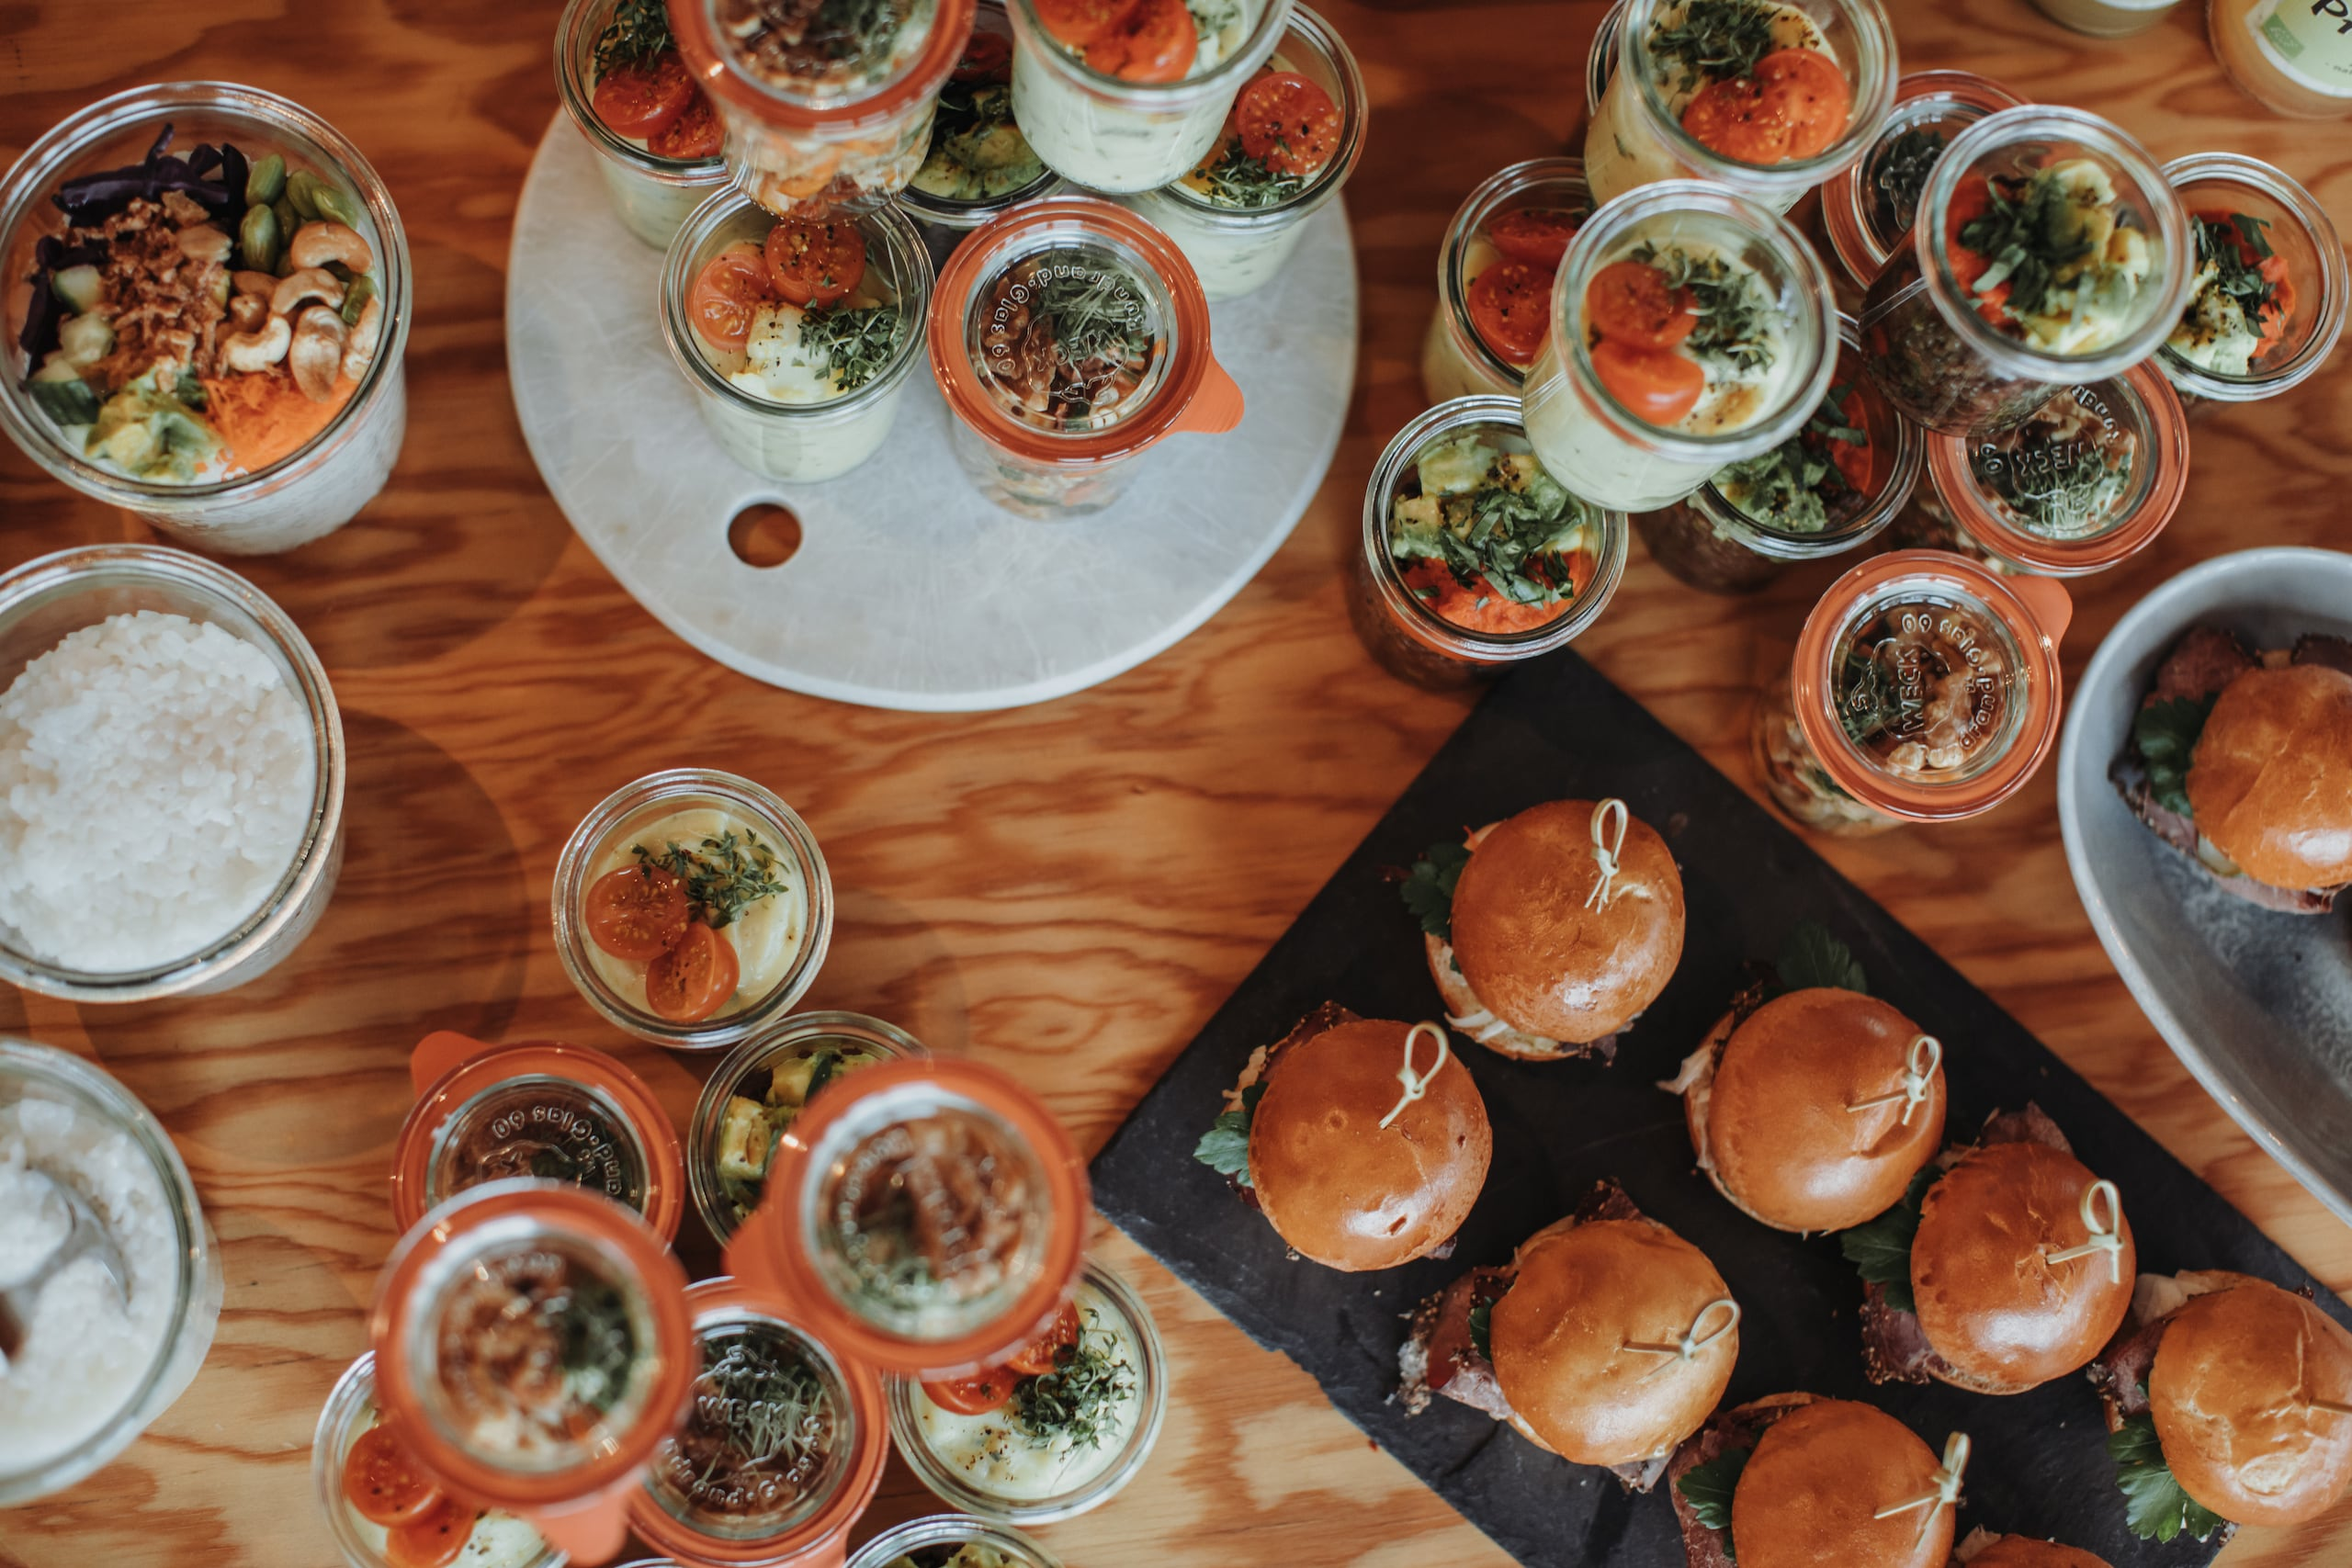 Catering: Digitale Events - EventBox Catering